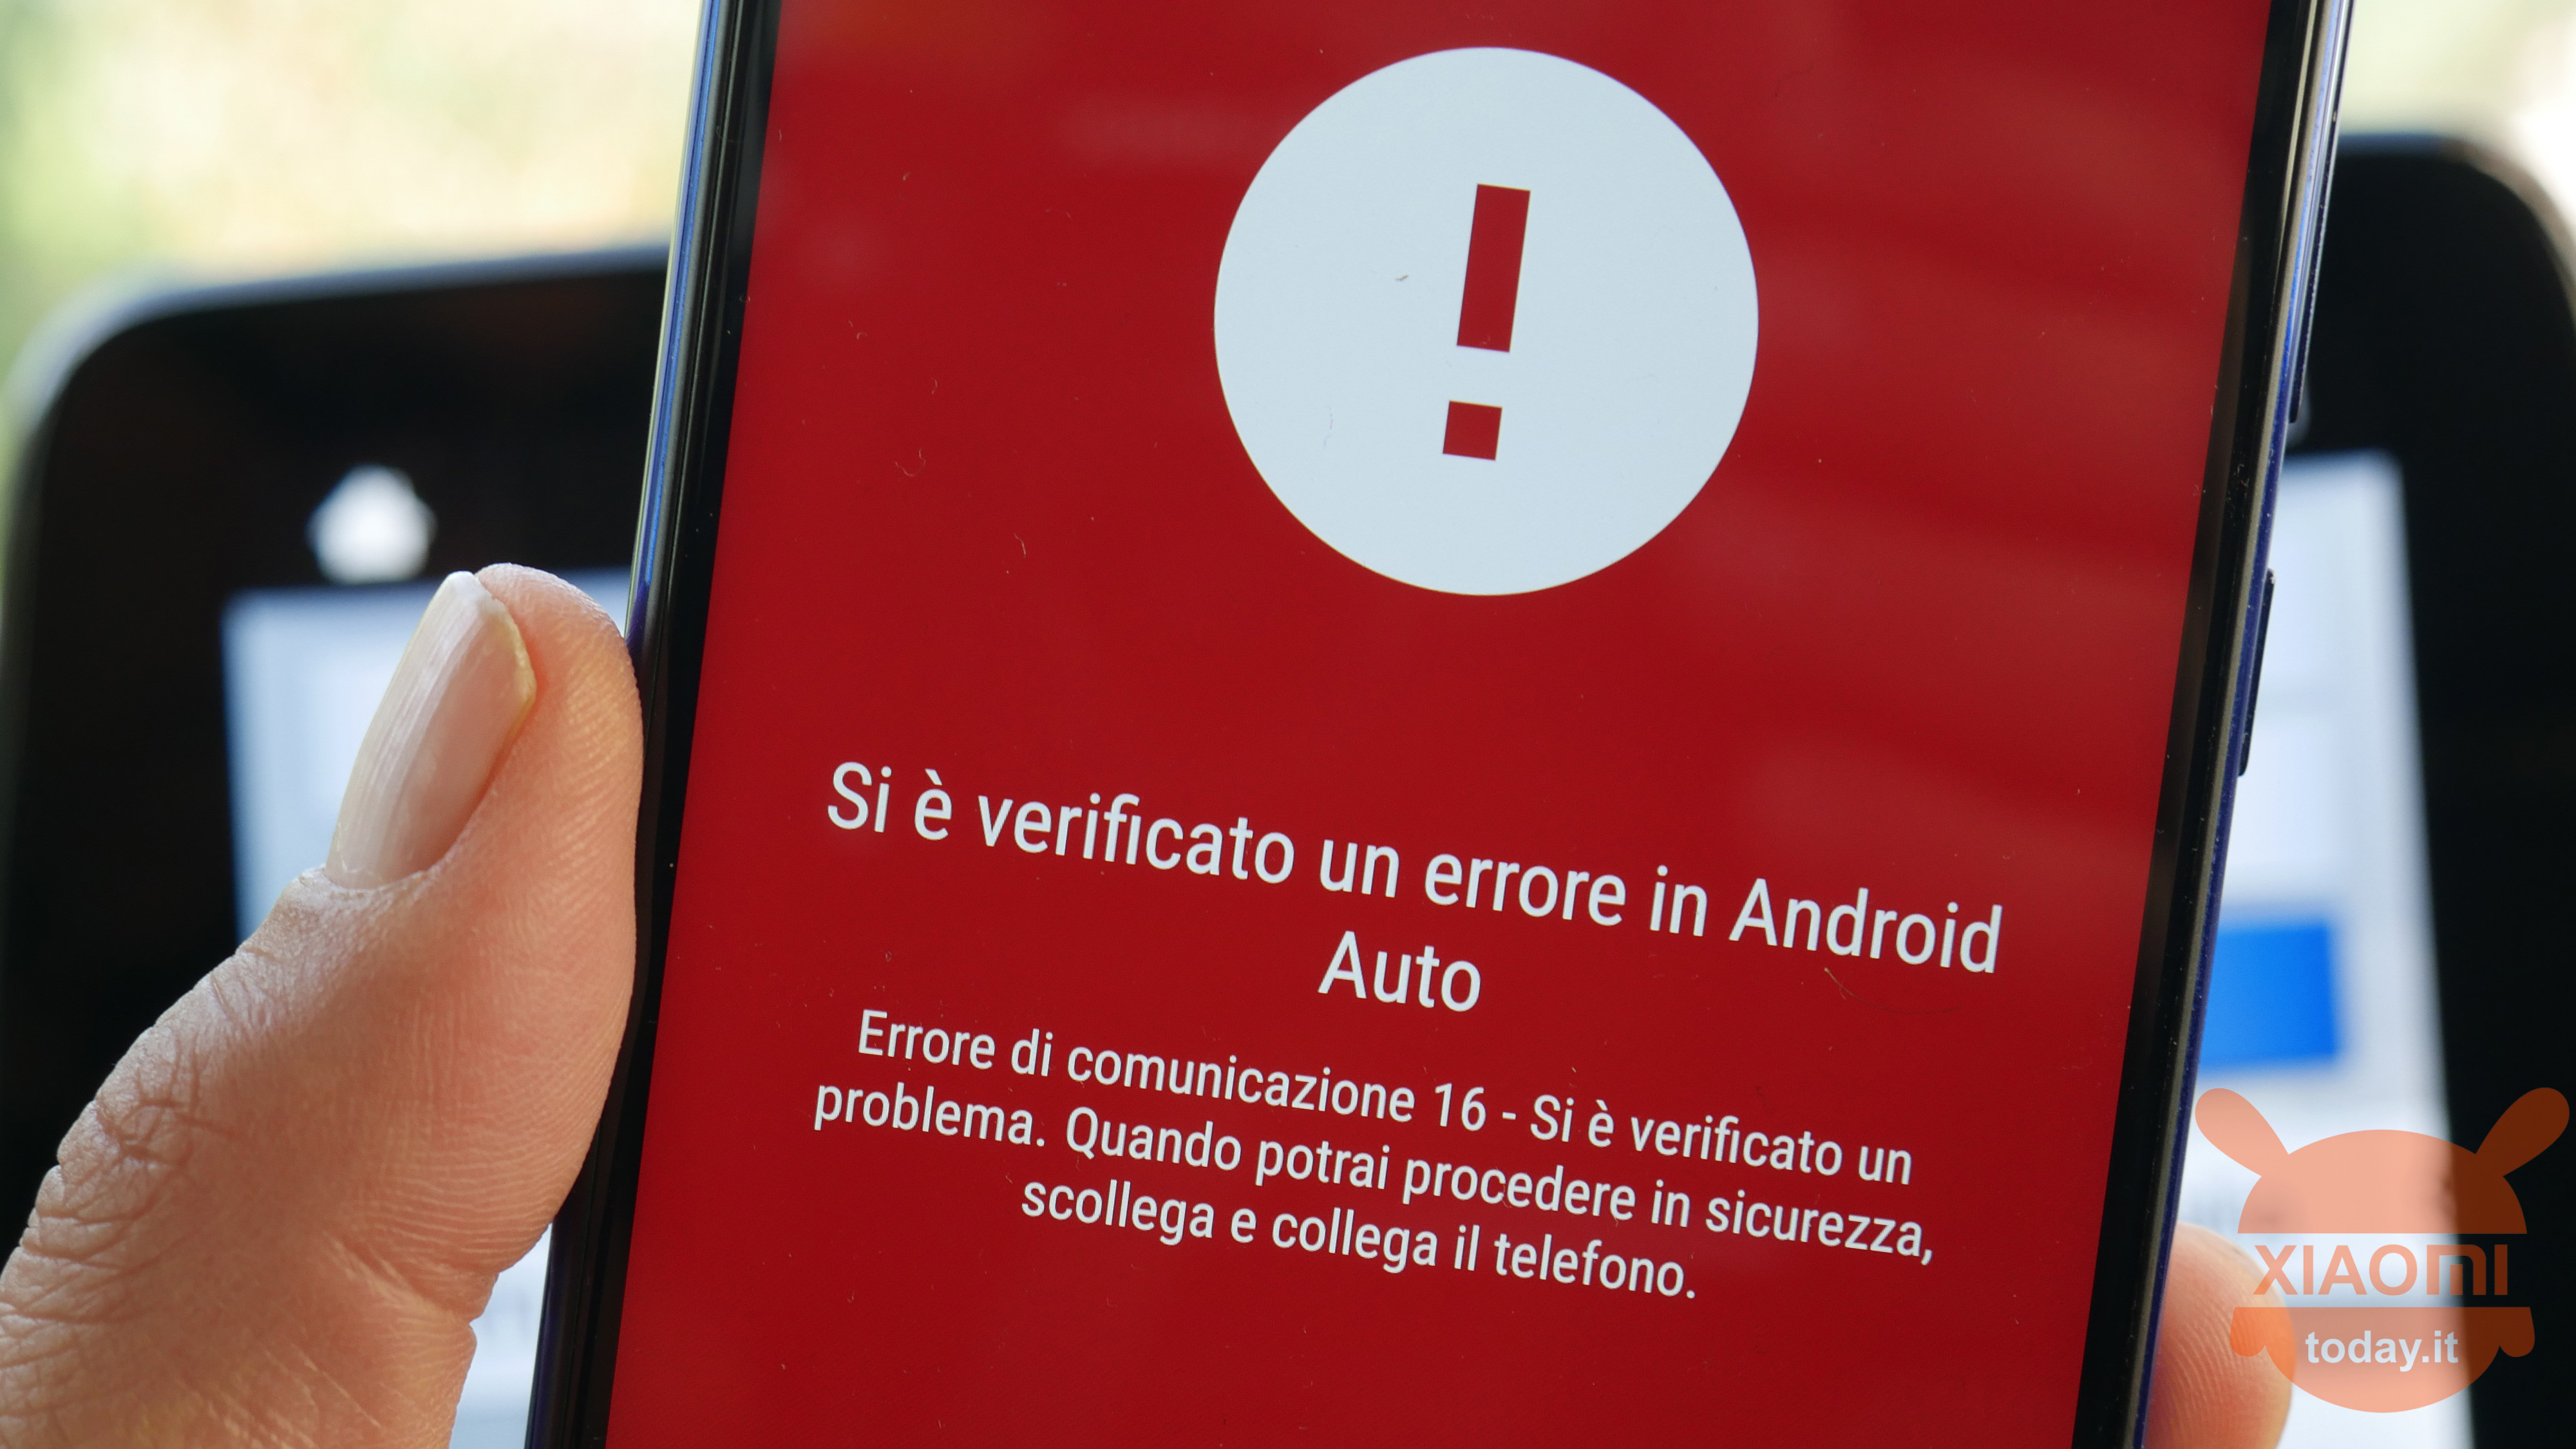 Solve the 16 communication error of Android Auto with Xiaomi